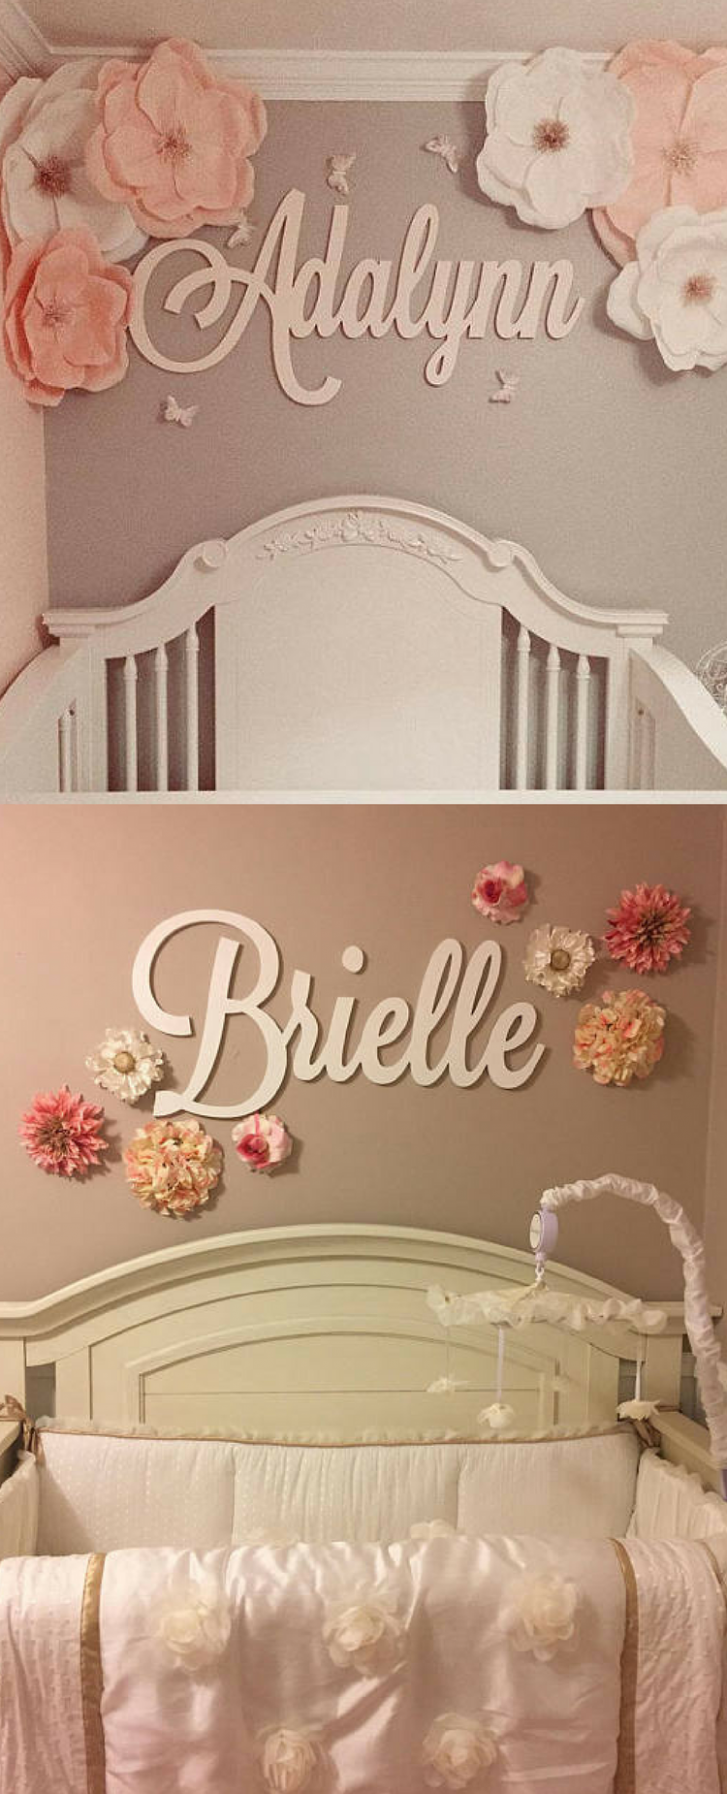 Cool cursive decal! This is a great idea for name décor for my  - Baby Room Name Decor